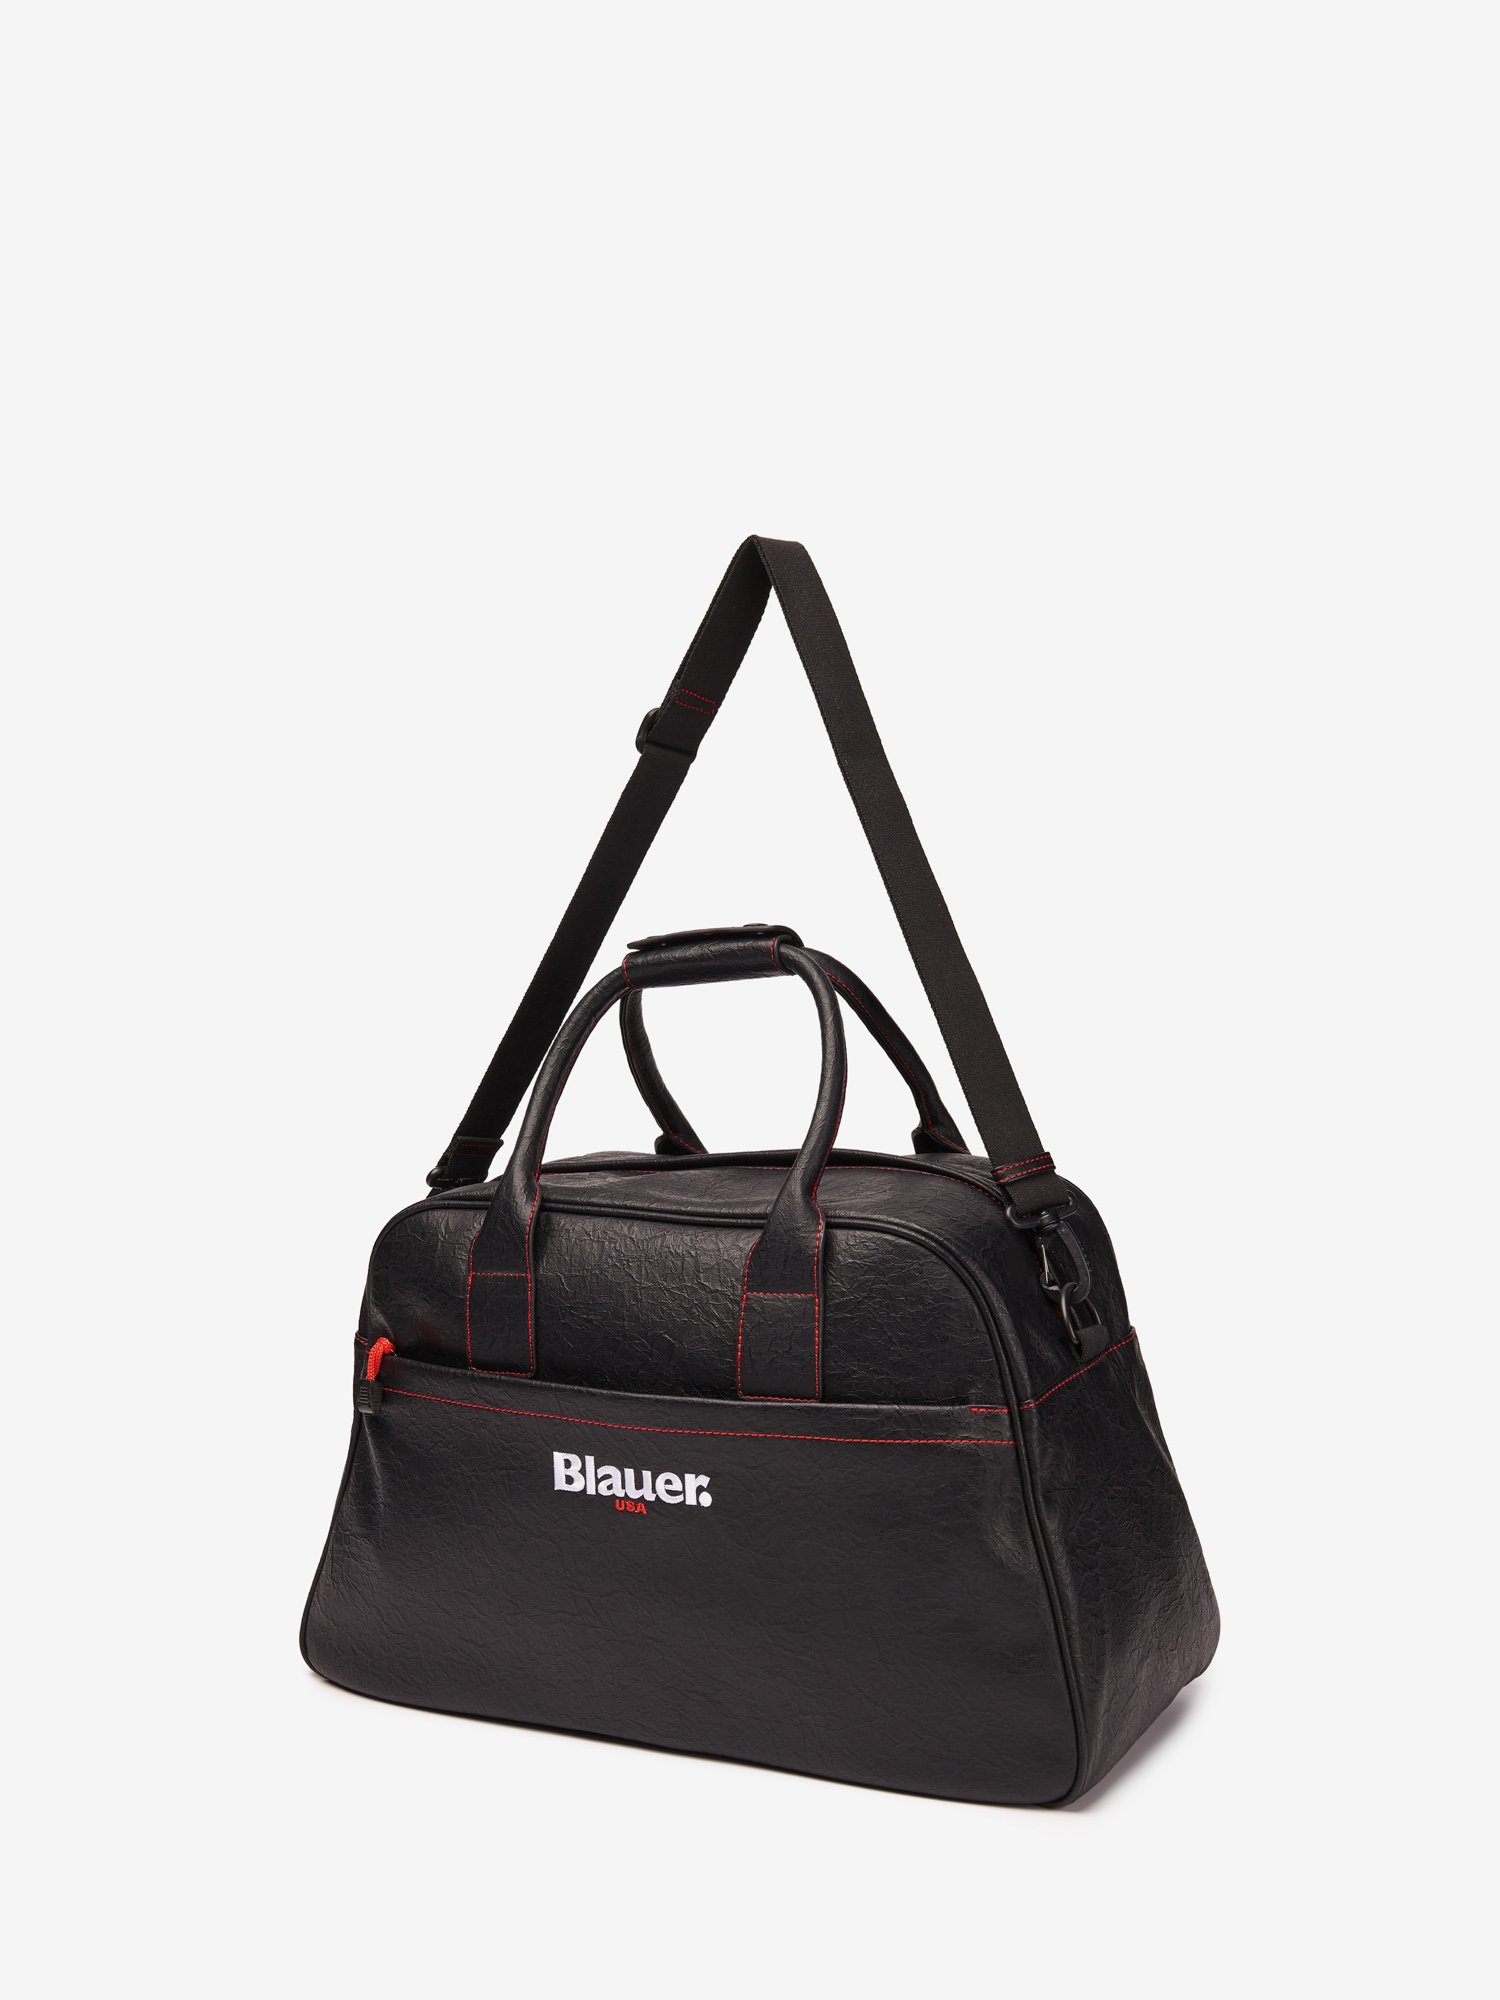 HERO TRAVEL BAG - Blauer